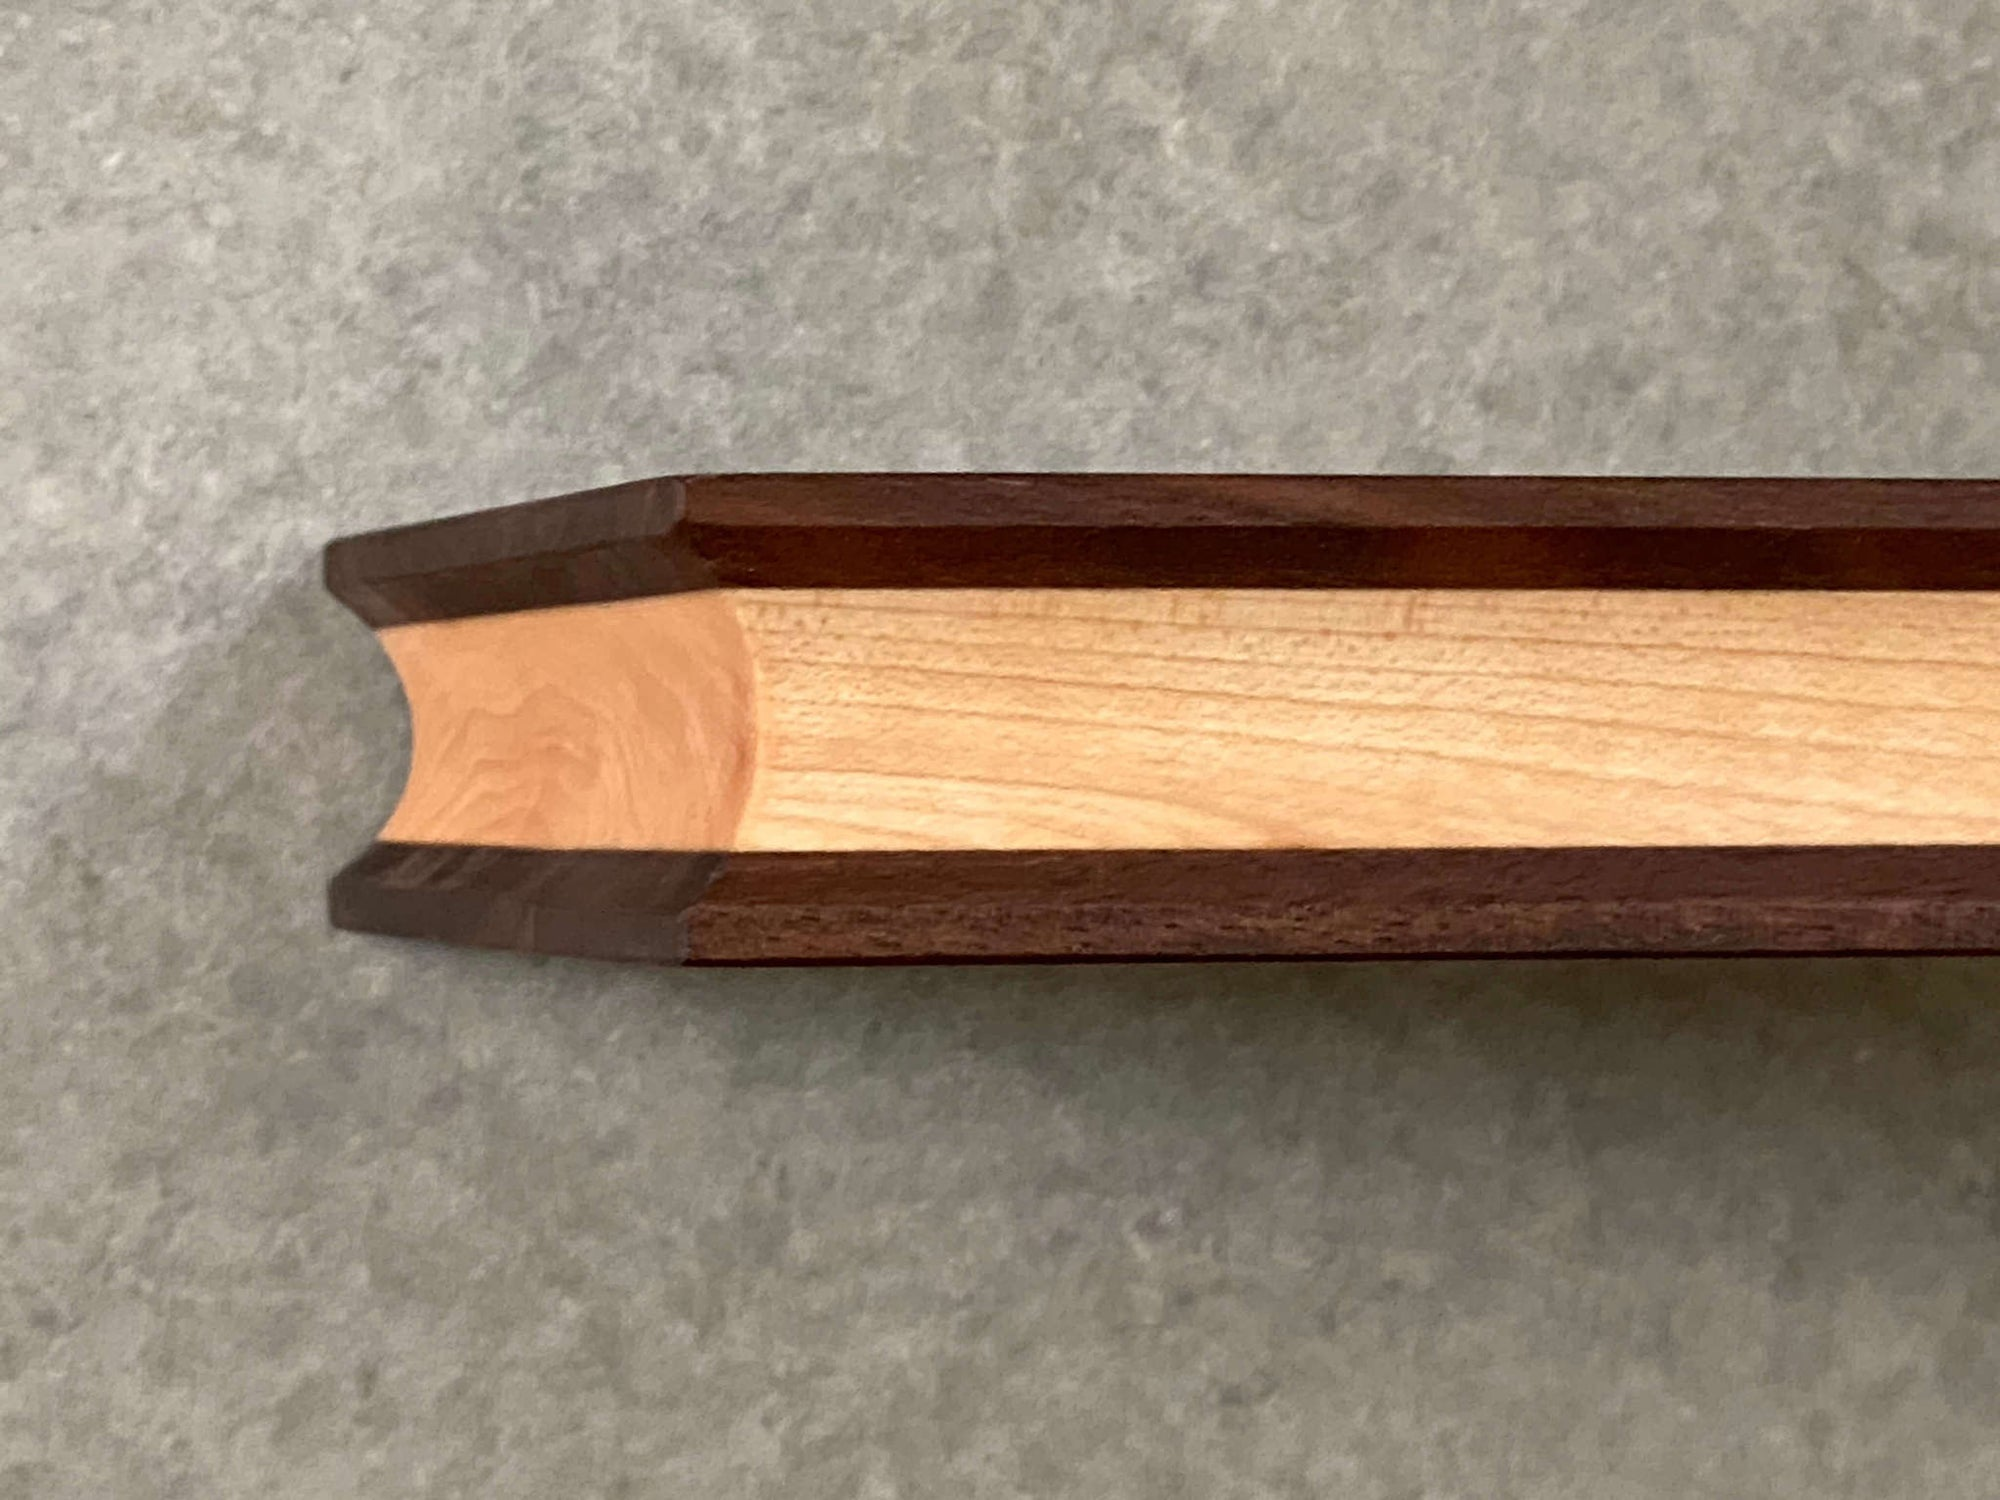 A long narrow rectangular cutting and serving board made of maple sandwiched between two thin layers of walnut. Sculpted edges provide comfortable fingerholds.